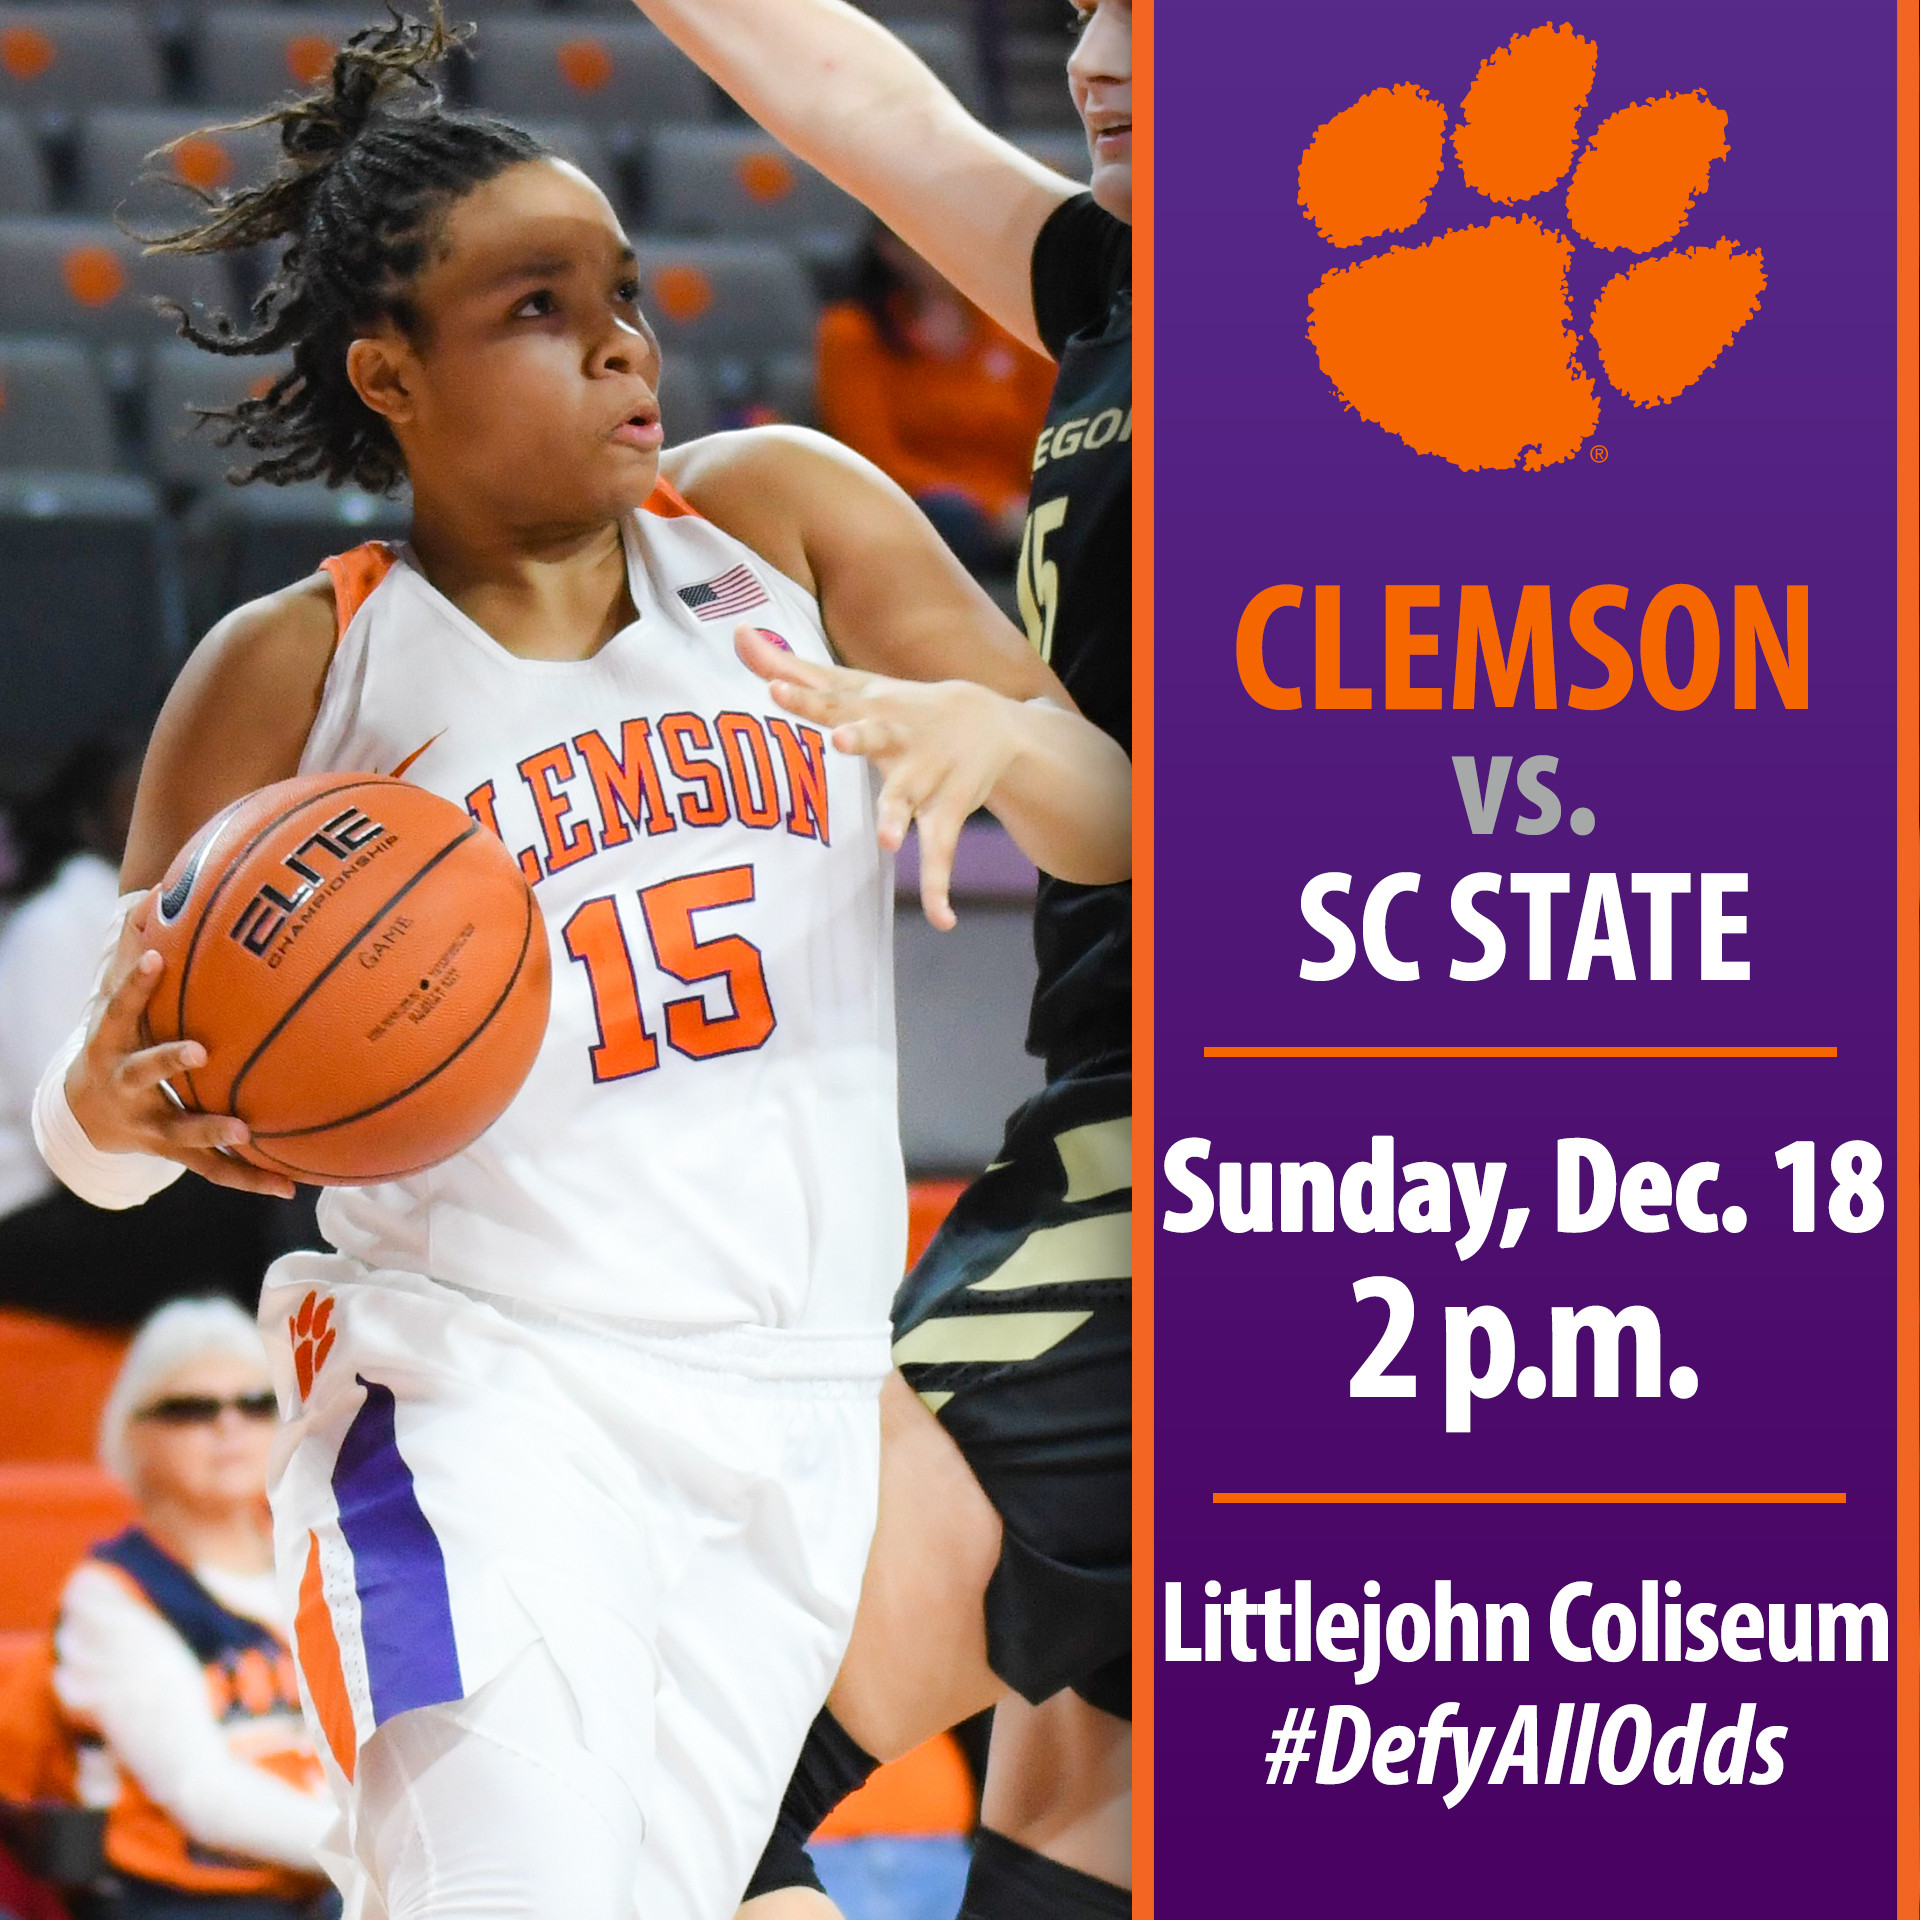 Tigers Host SC State in Sunday Matinee at Littlejohn